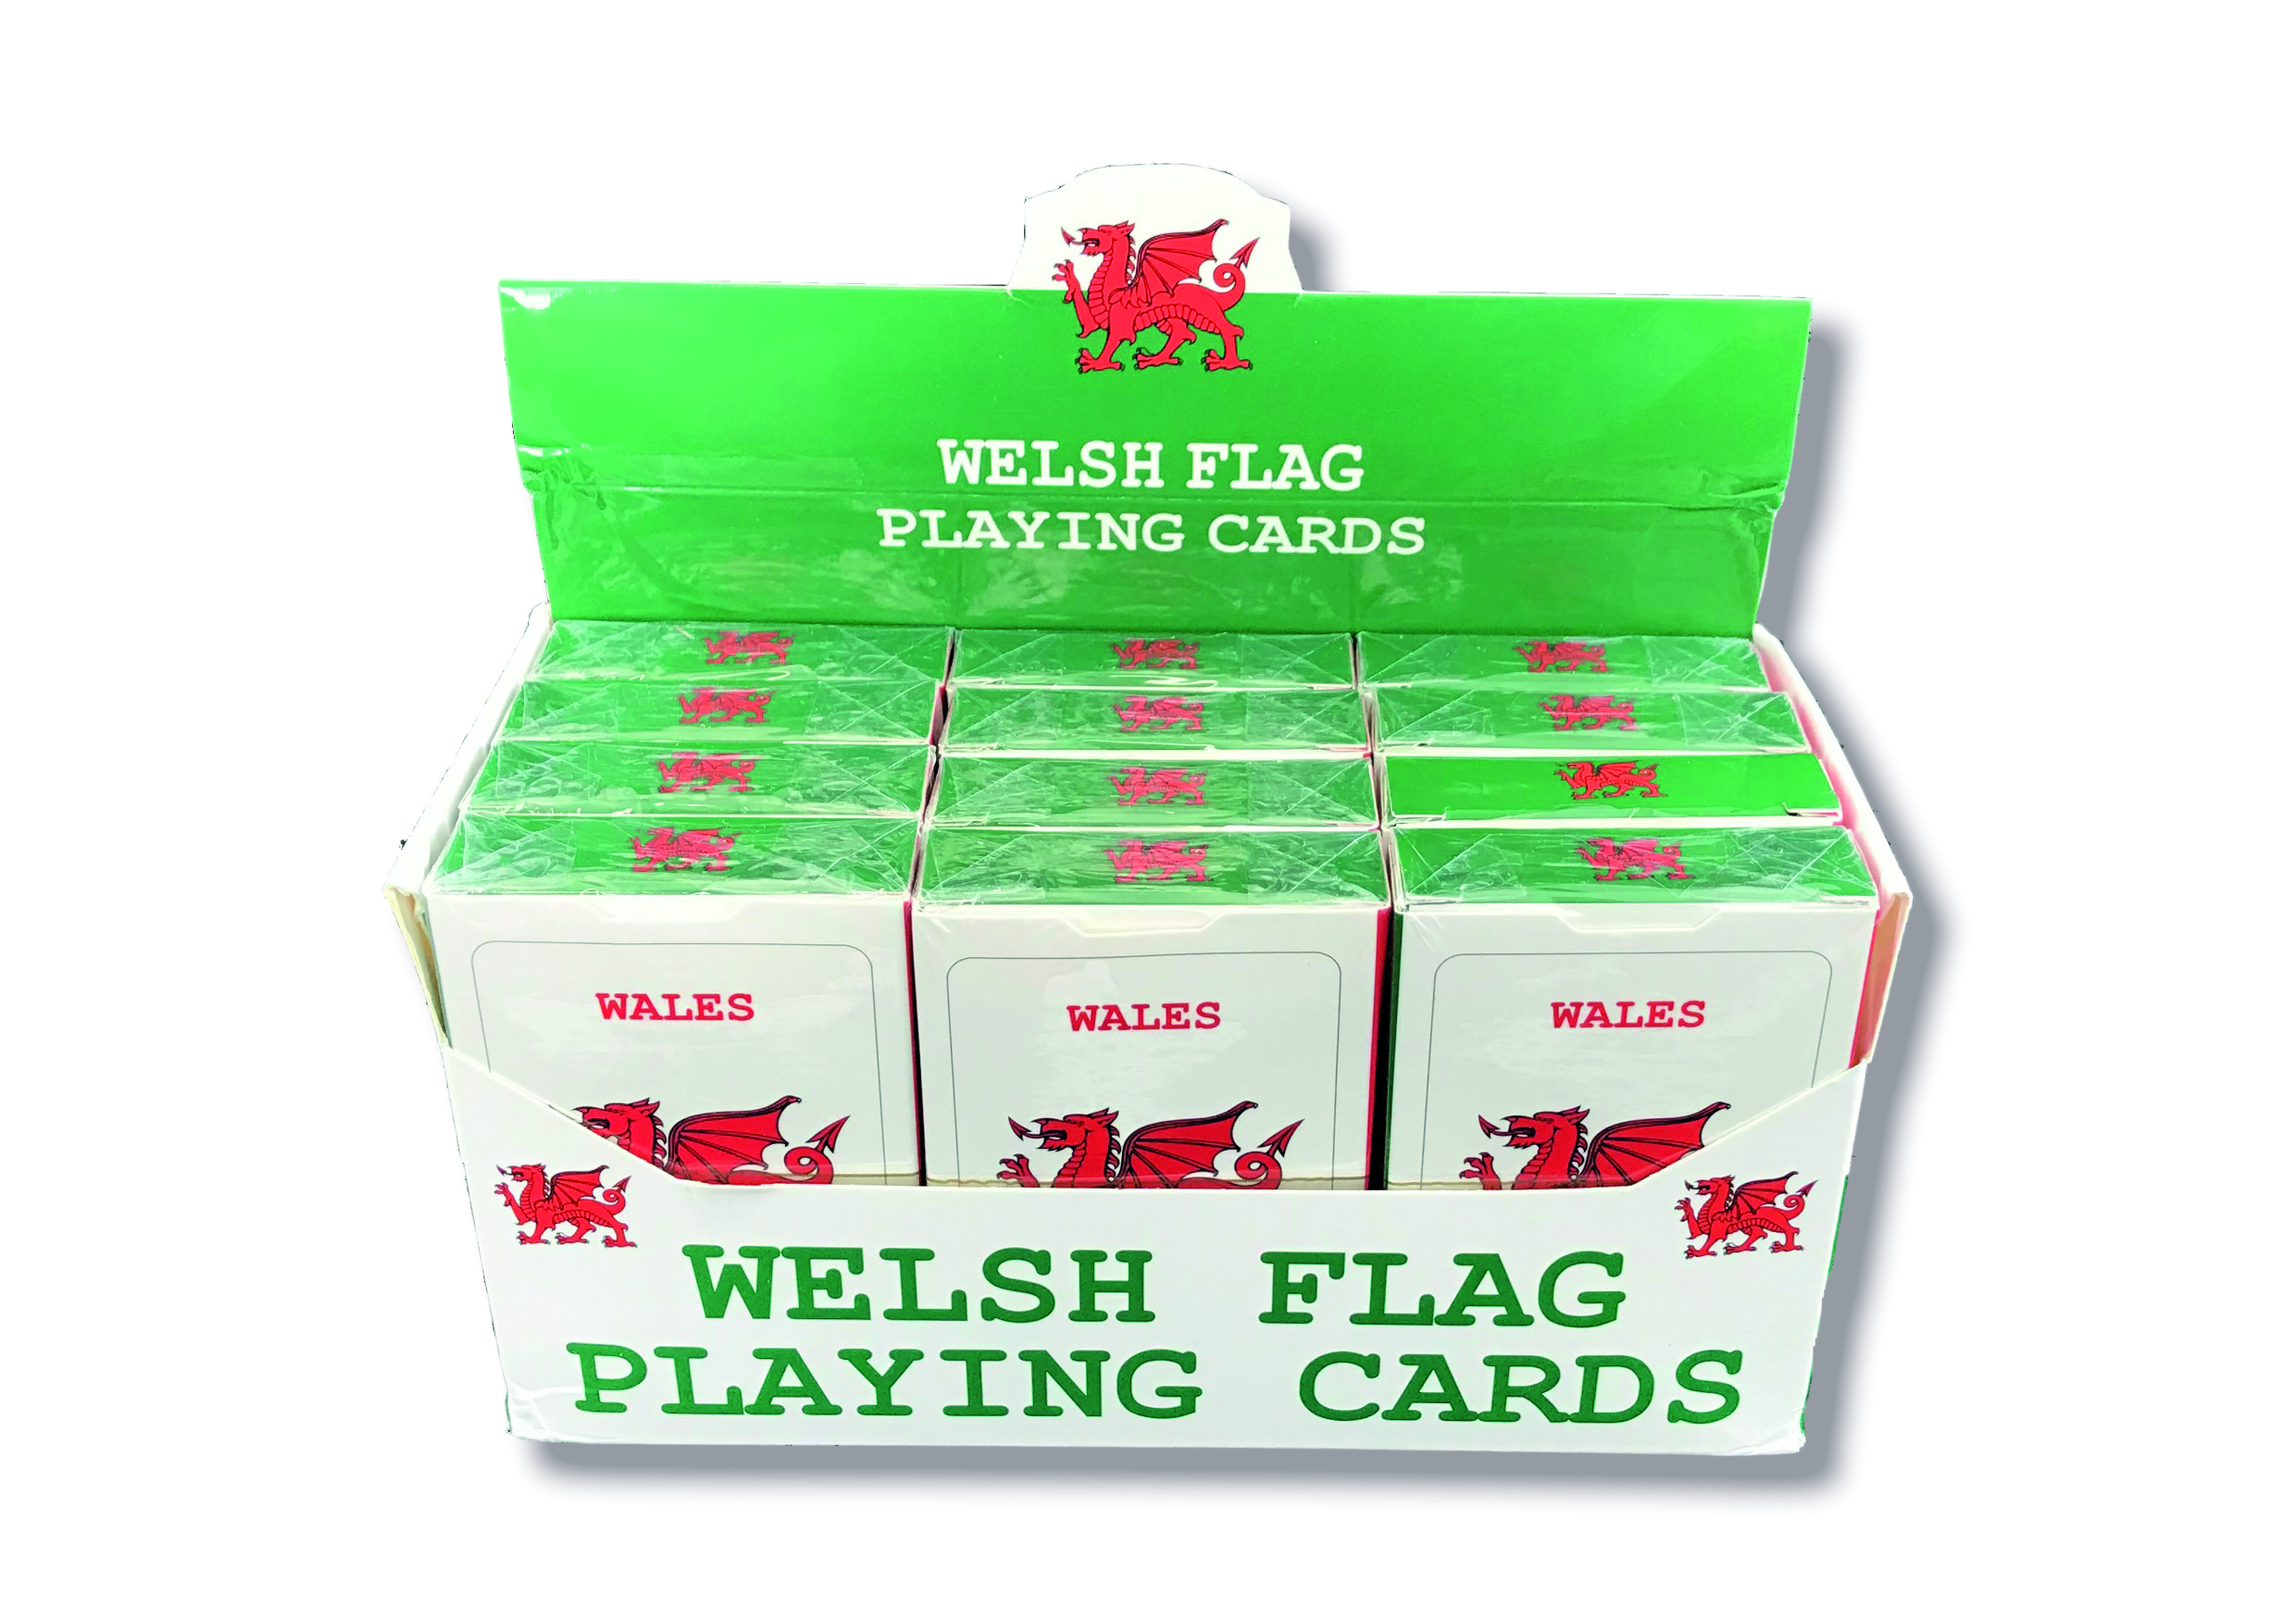 Welsh Flag Playing Cards in display box